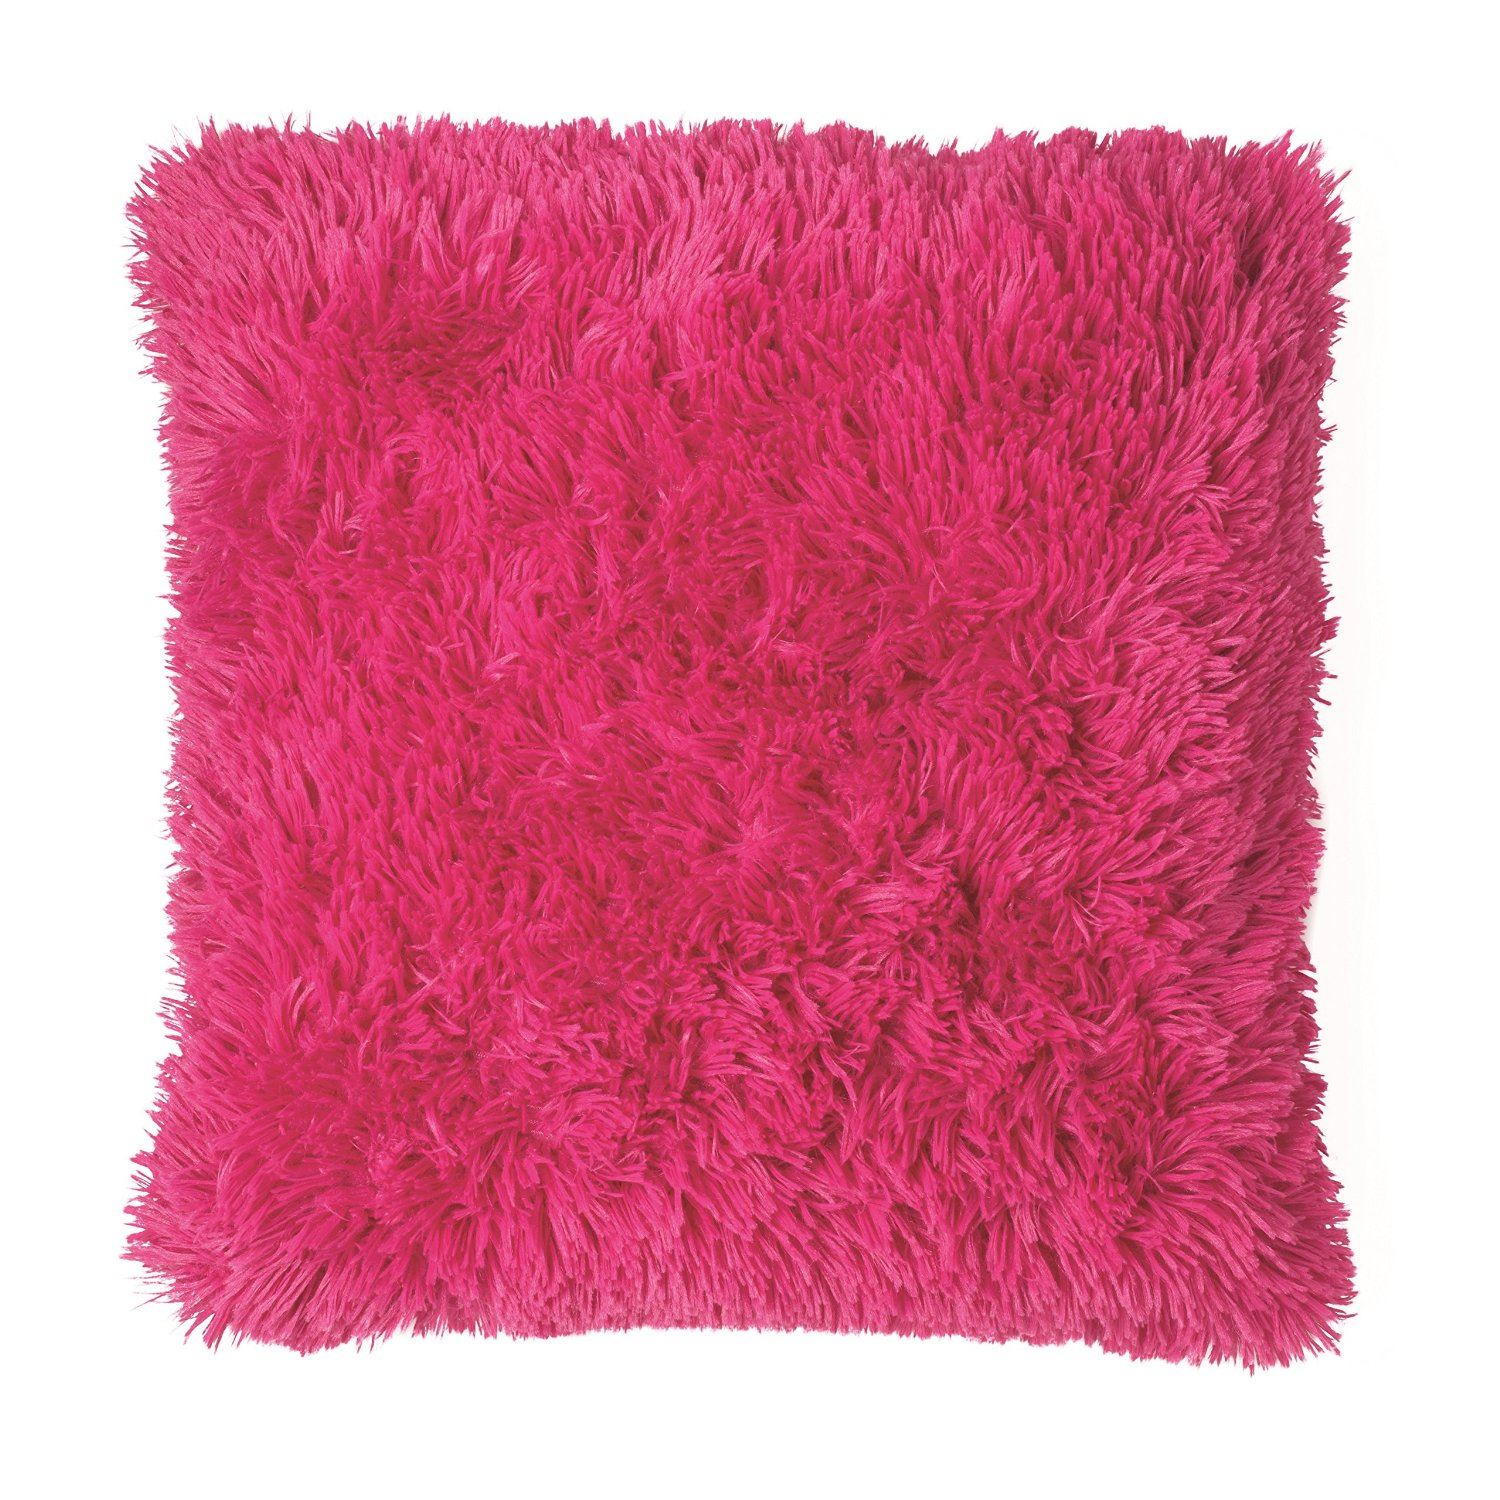 faux fur cushion covers shaggy cuddly soft by designer. Black Bedroom Furniture Sets. Home Design Ideas